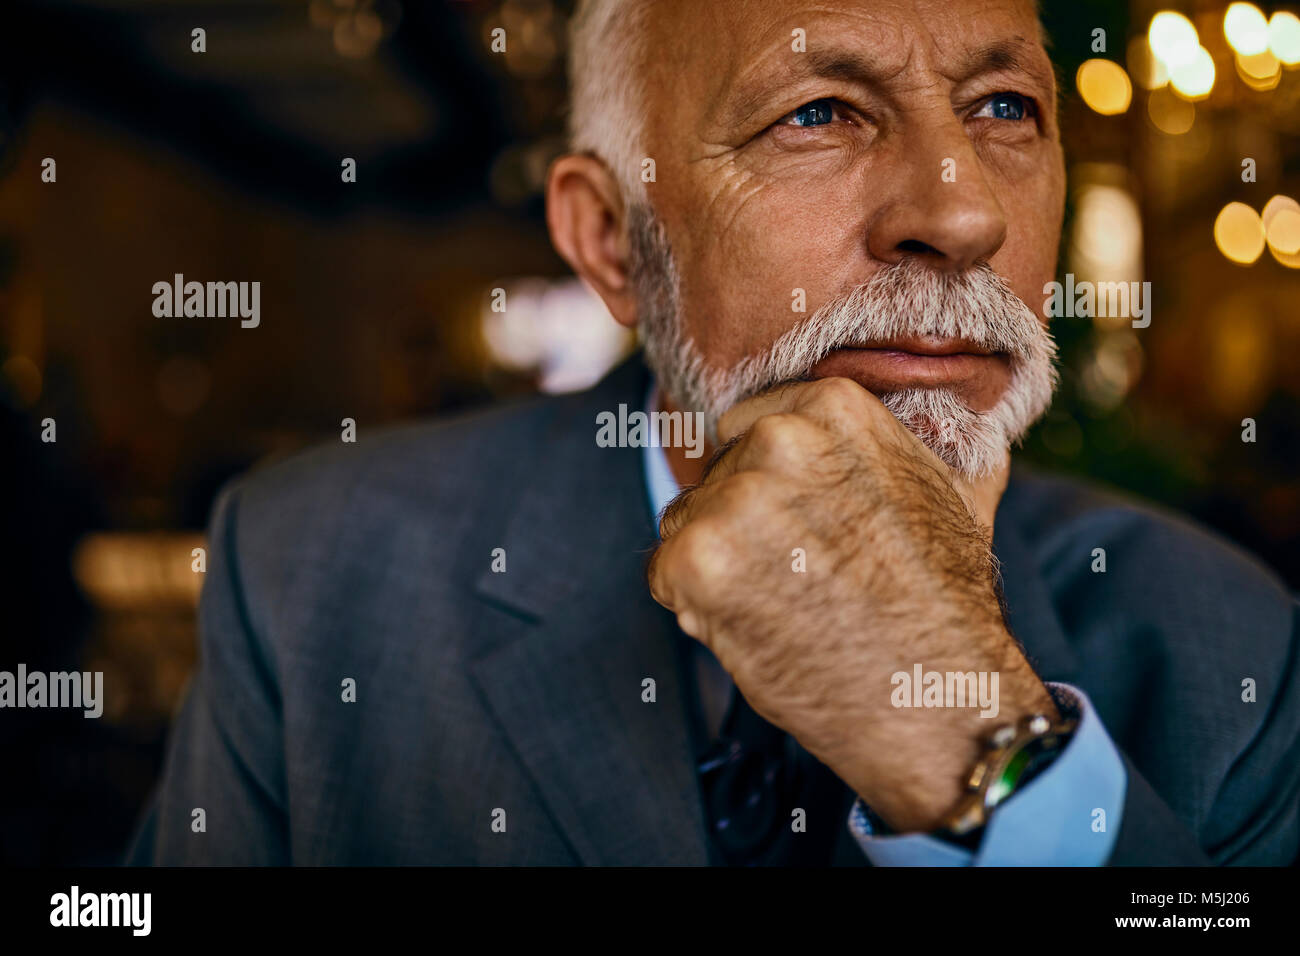 Portrait of senior man thinking élégant Photo Stock